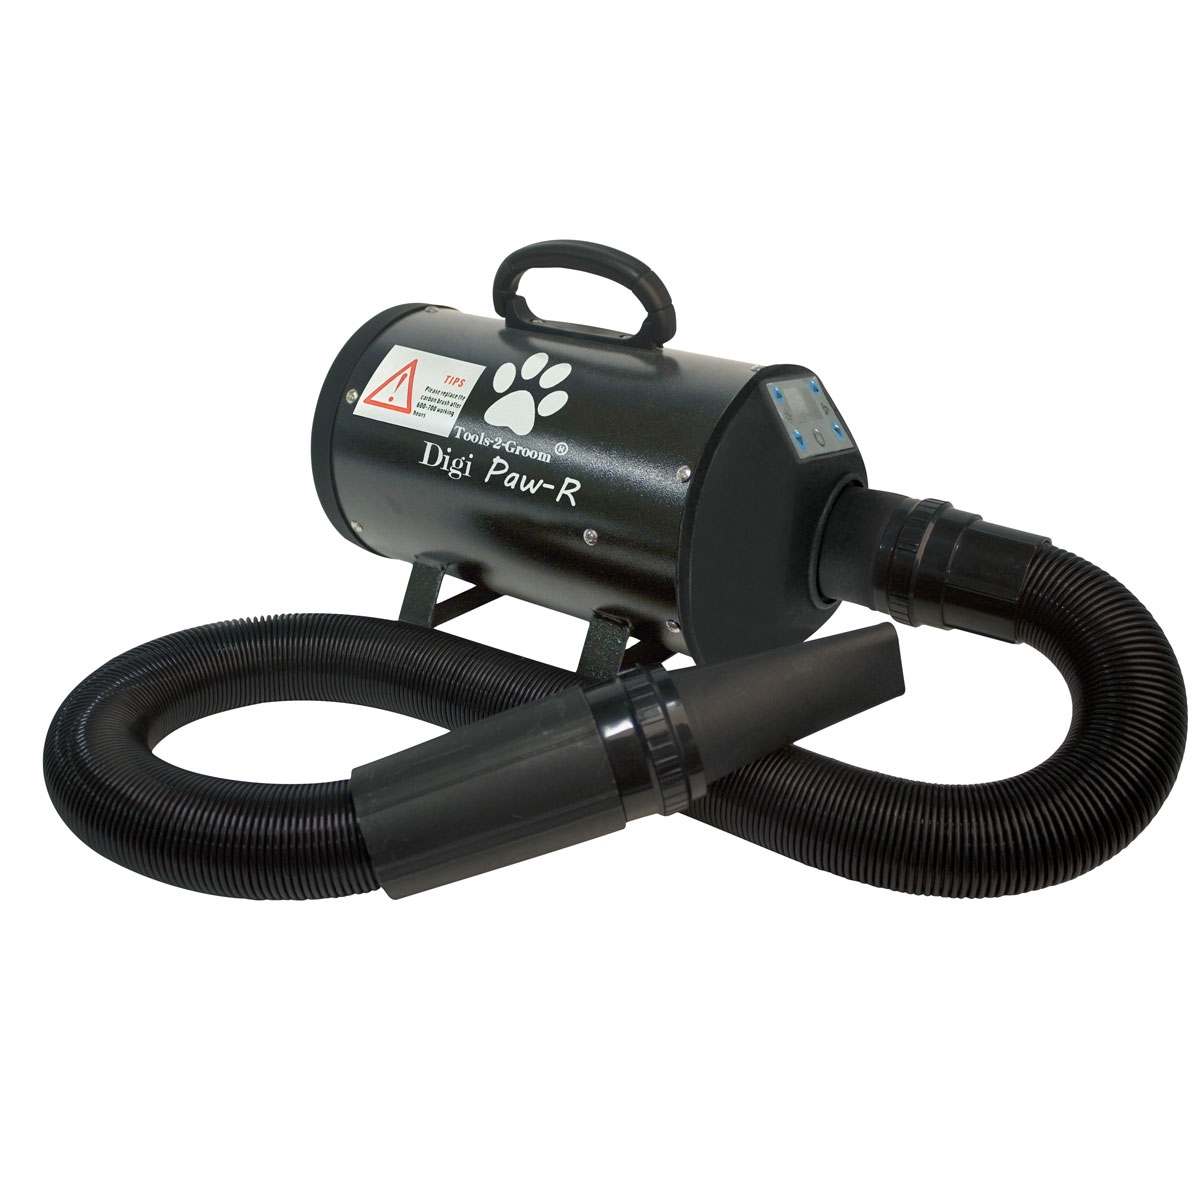 Tools-2-Groom Waterblazer Digi Paw-R 2200 Watt